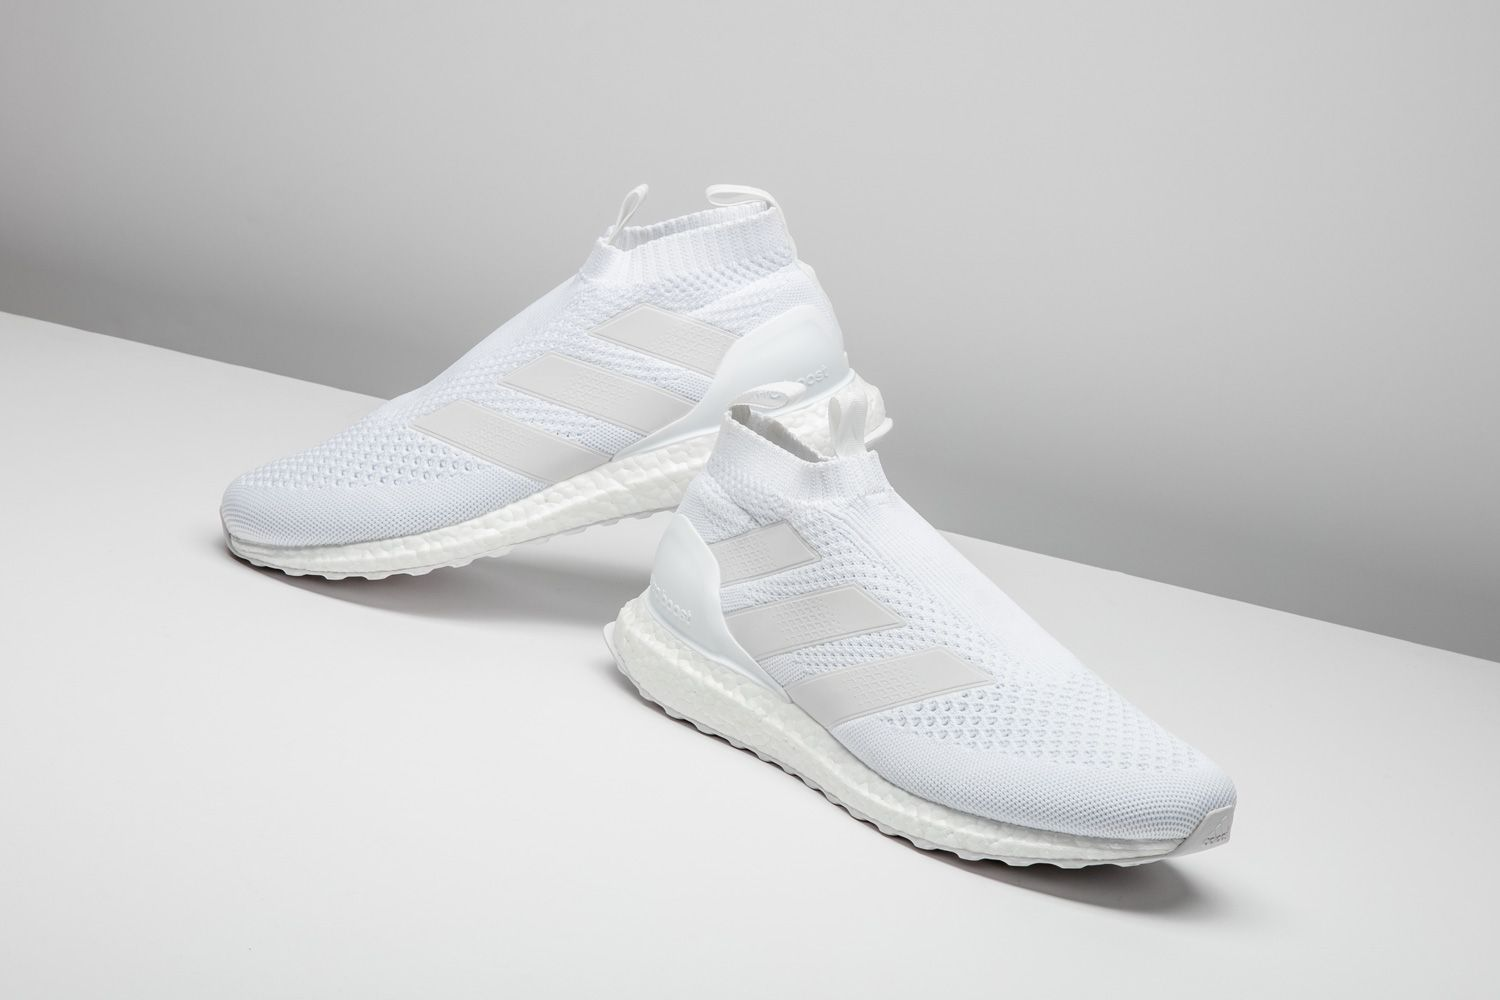 sports shoes 99667 e4e60 The adidas ACE 16+ Purecontrol Ultra Boost in the icy white colorway is a  fallwinter essential. adidas